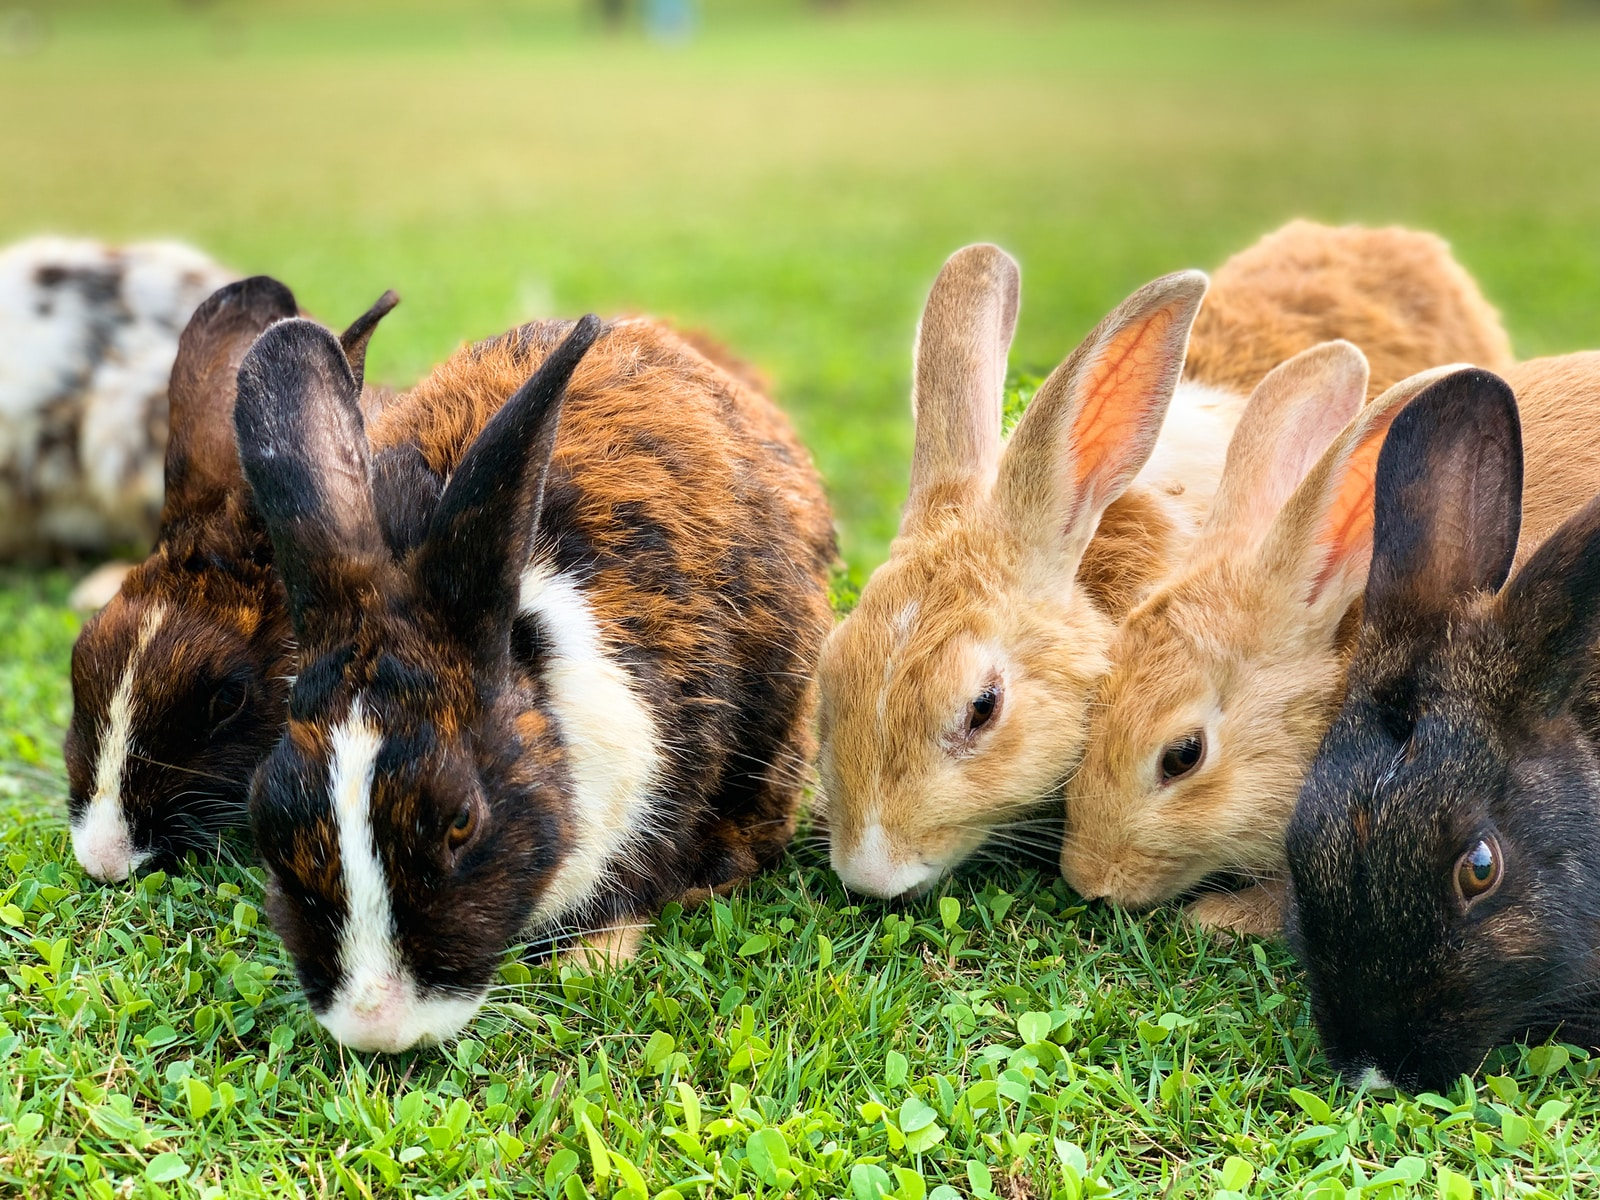 brown and black rabbit on green grass during daytime